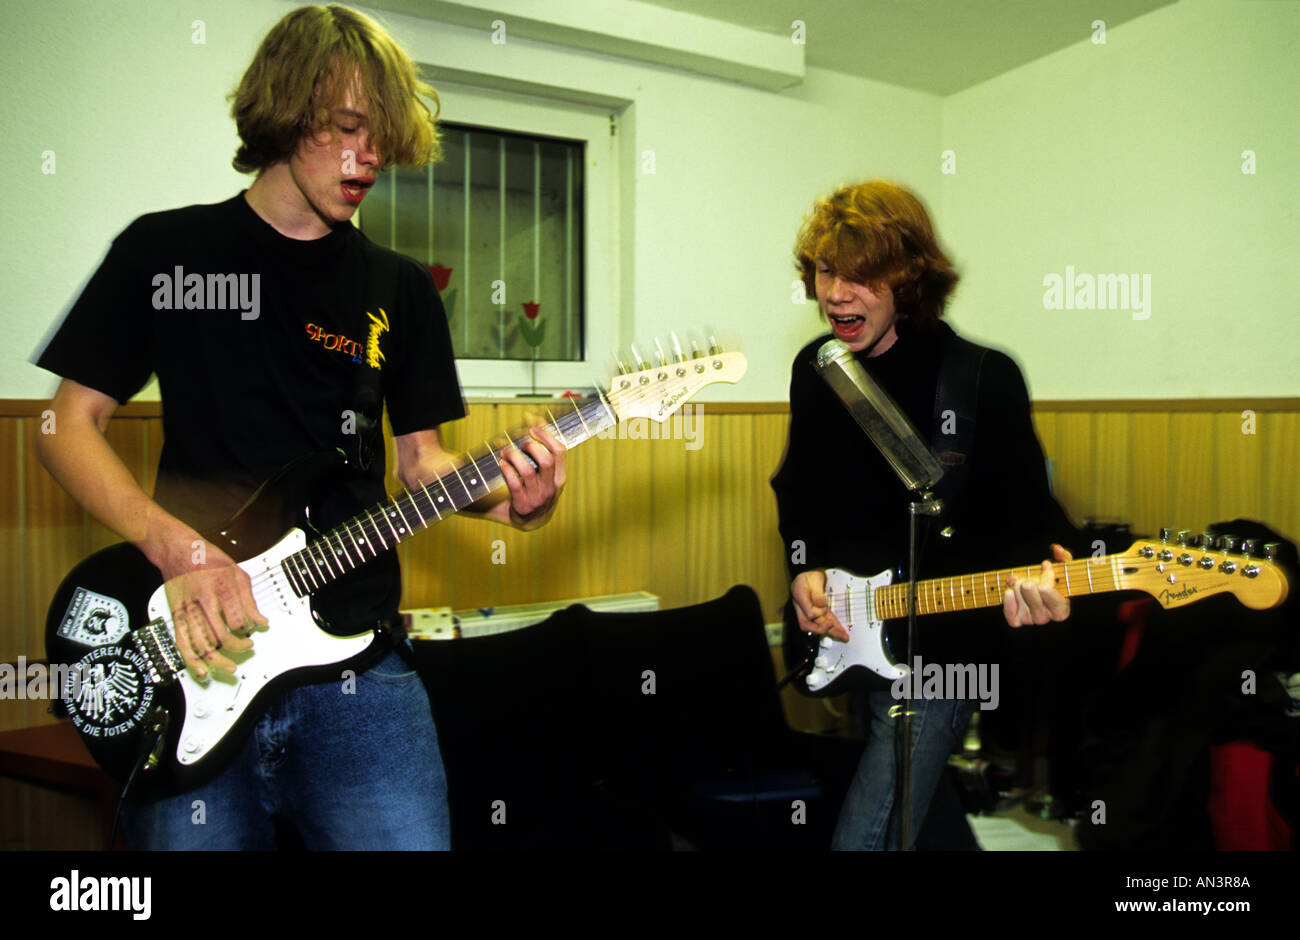 Amature pop band practice - Stock Image